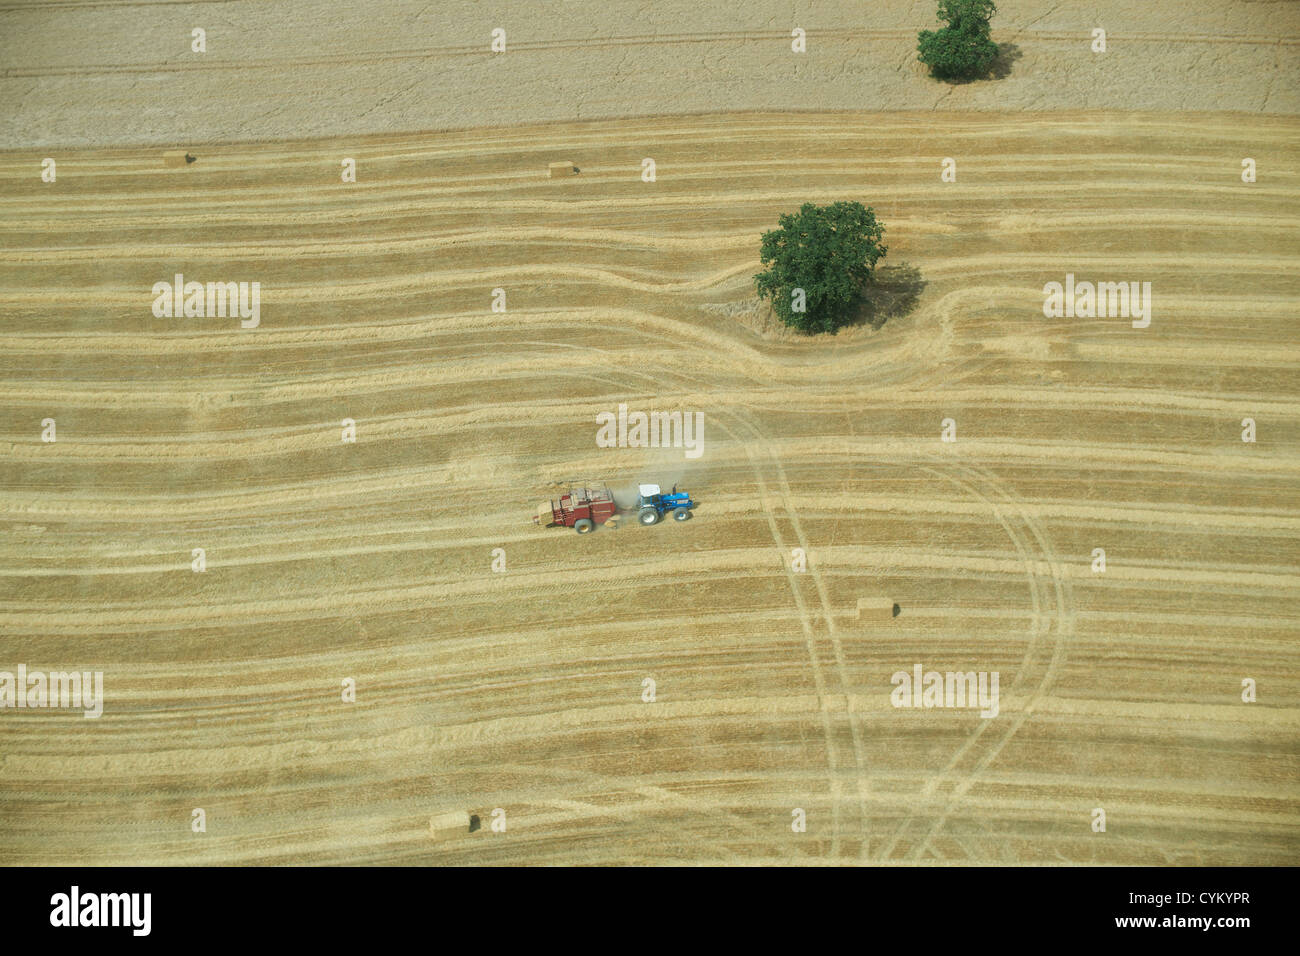 Aerial view of tractor in crop field - Stock Image